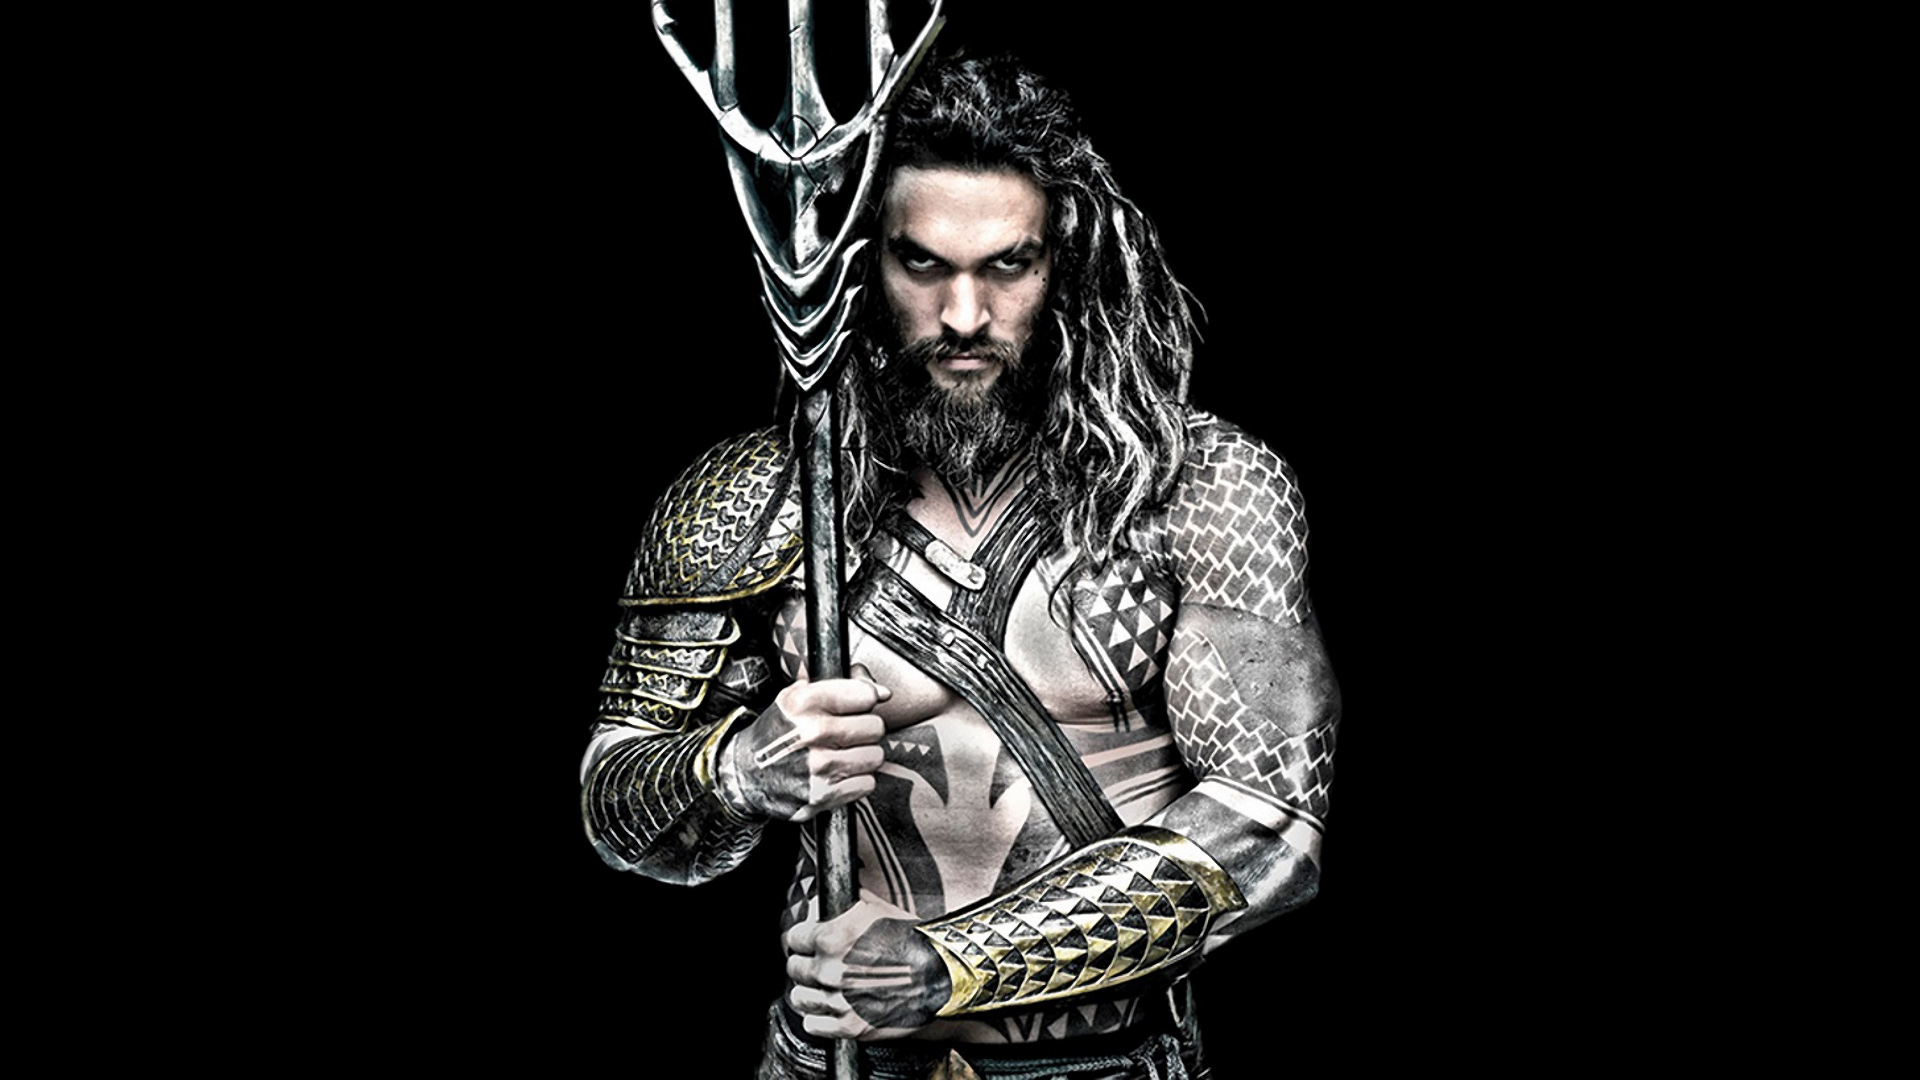 Jason Momoa Wallpapers High Resolution and Quality Download 1920x1080